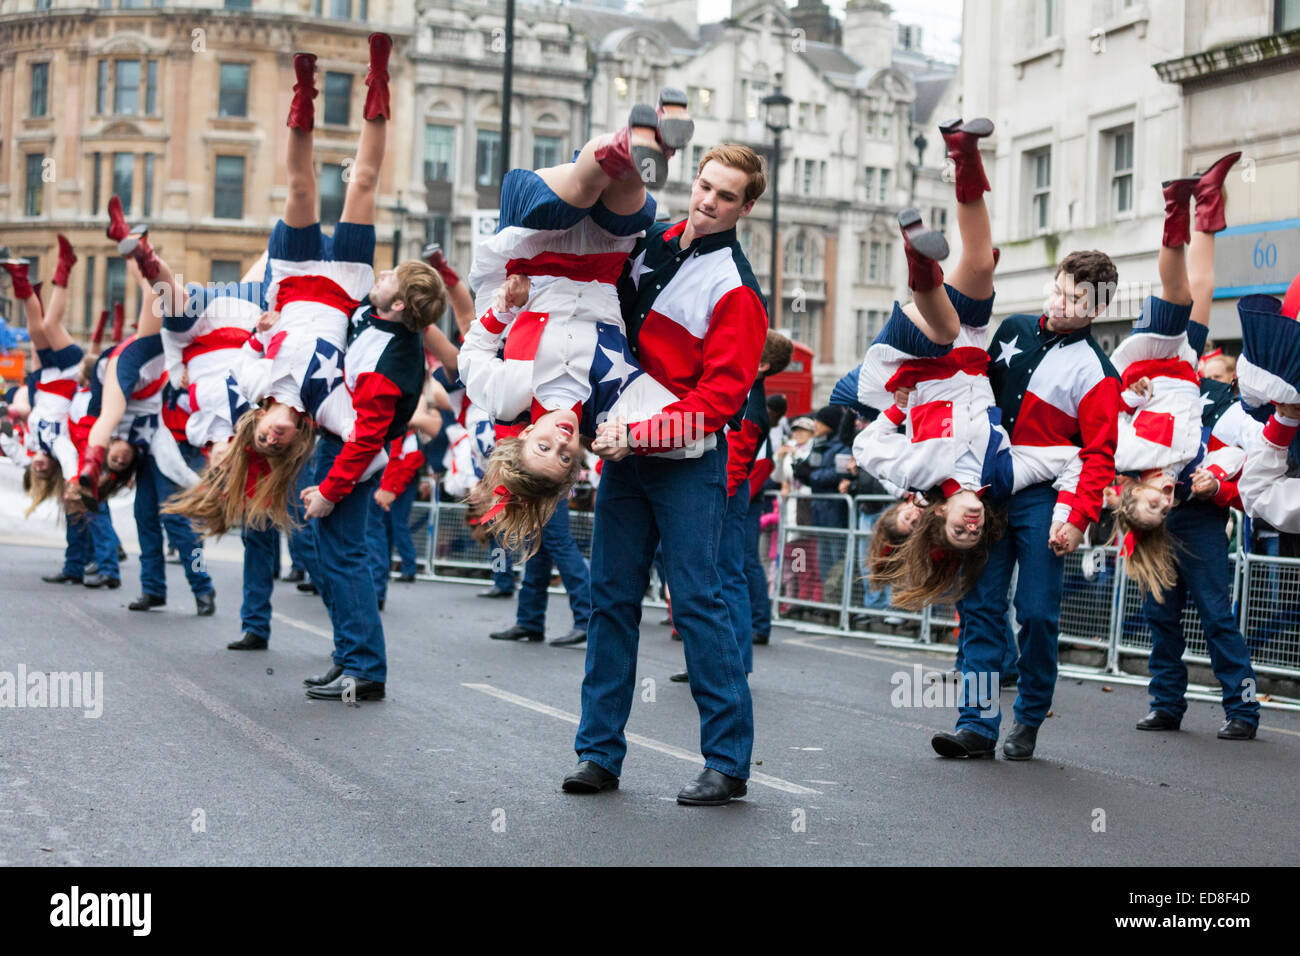 London, UK, 1st January 2015. The Lake Highlands Wildcat Wranglers from Texas, USA perform their routine with a Stock Photo